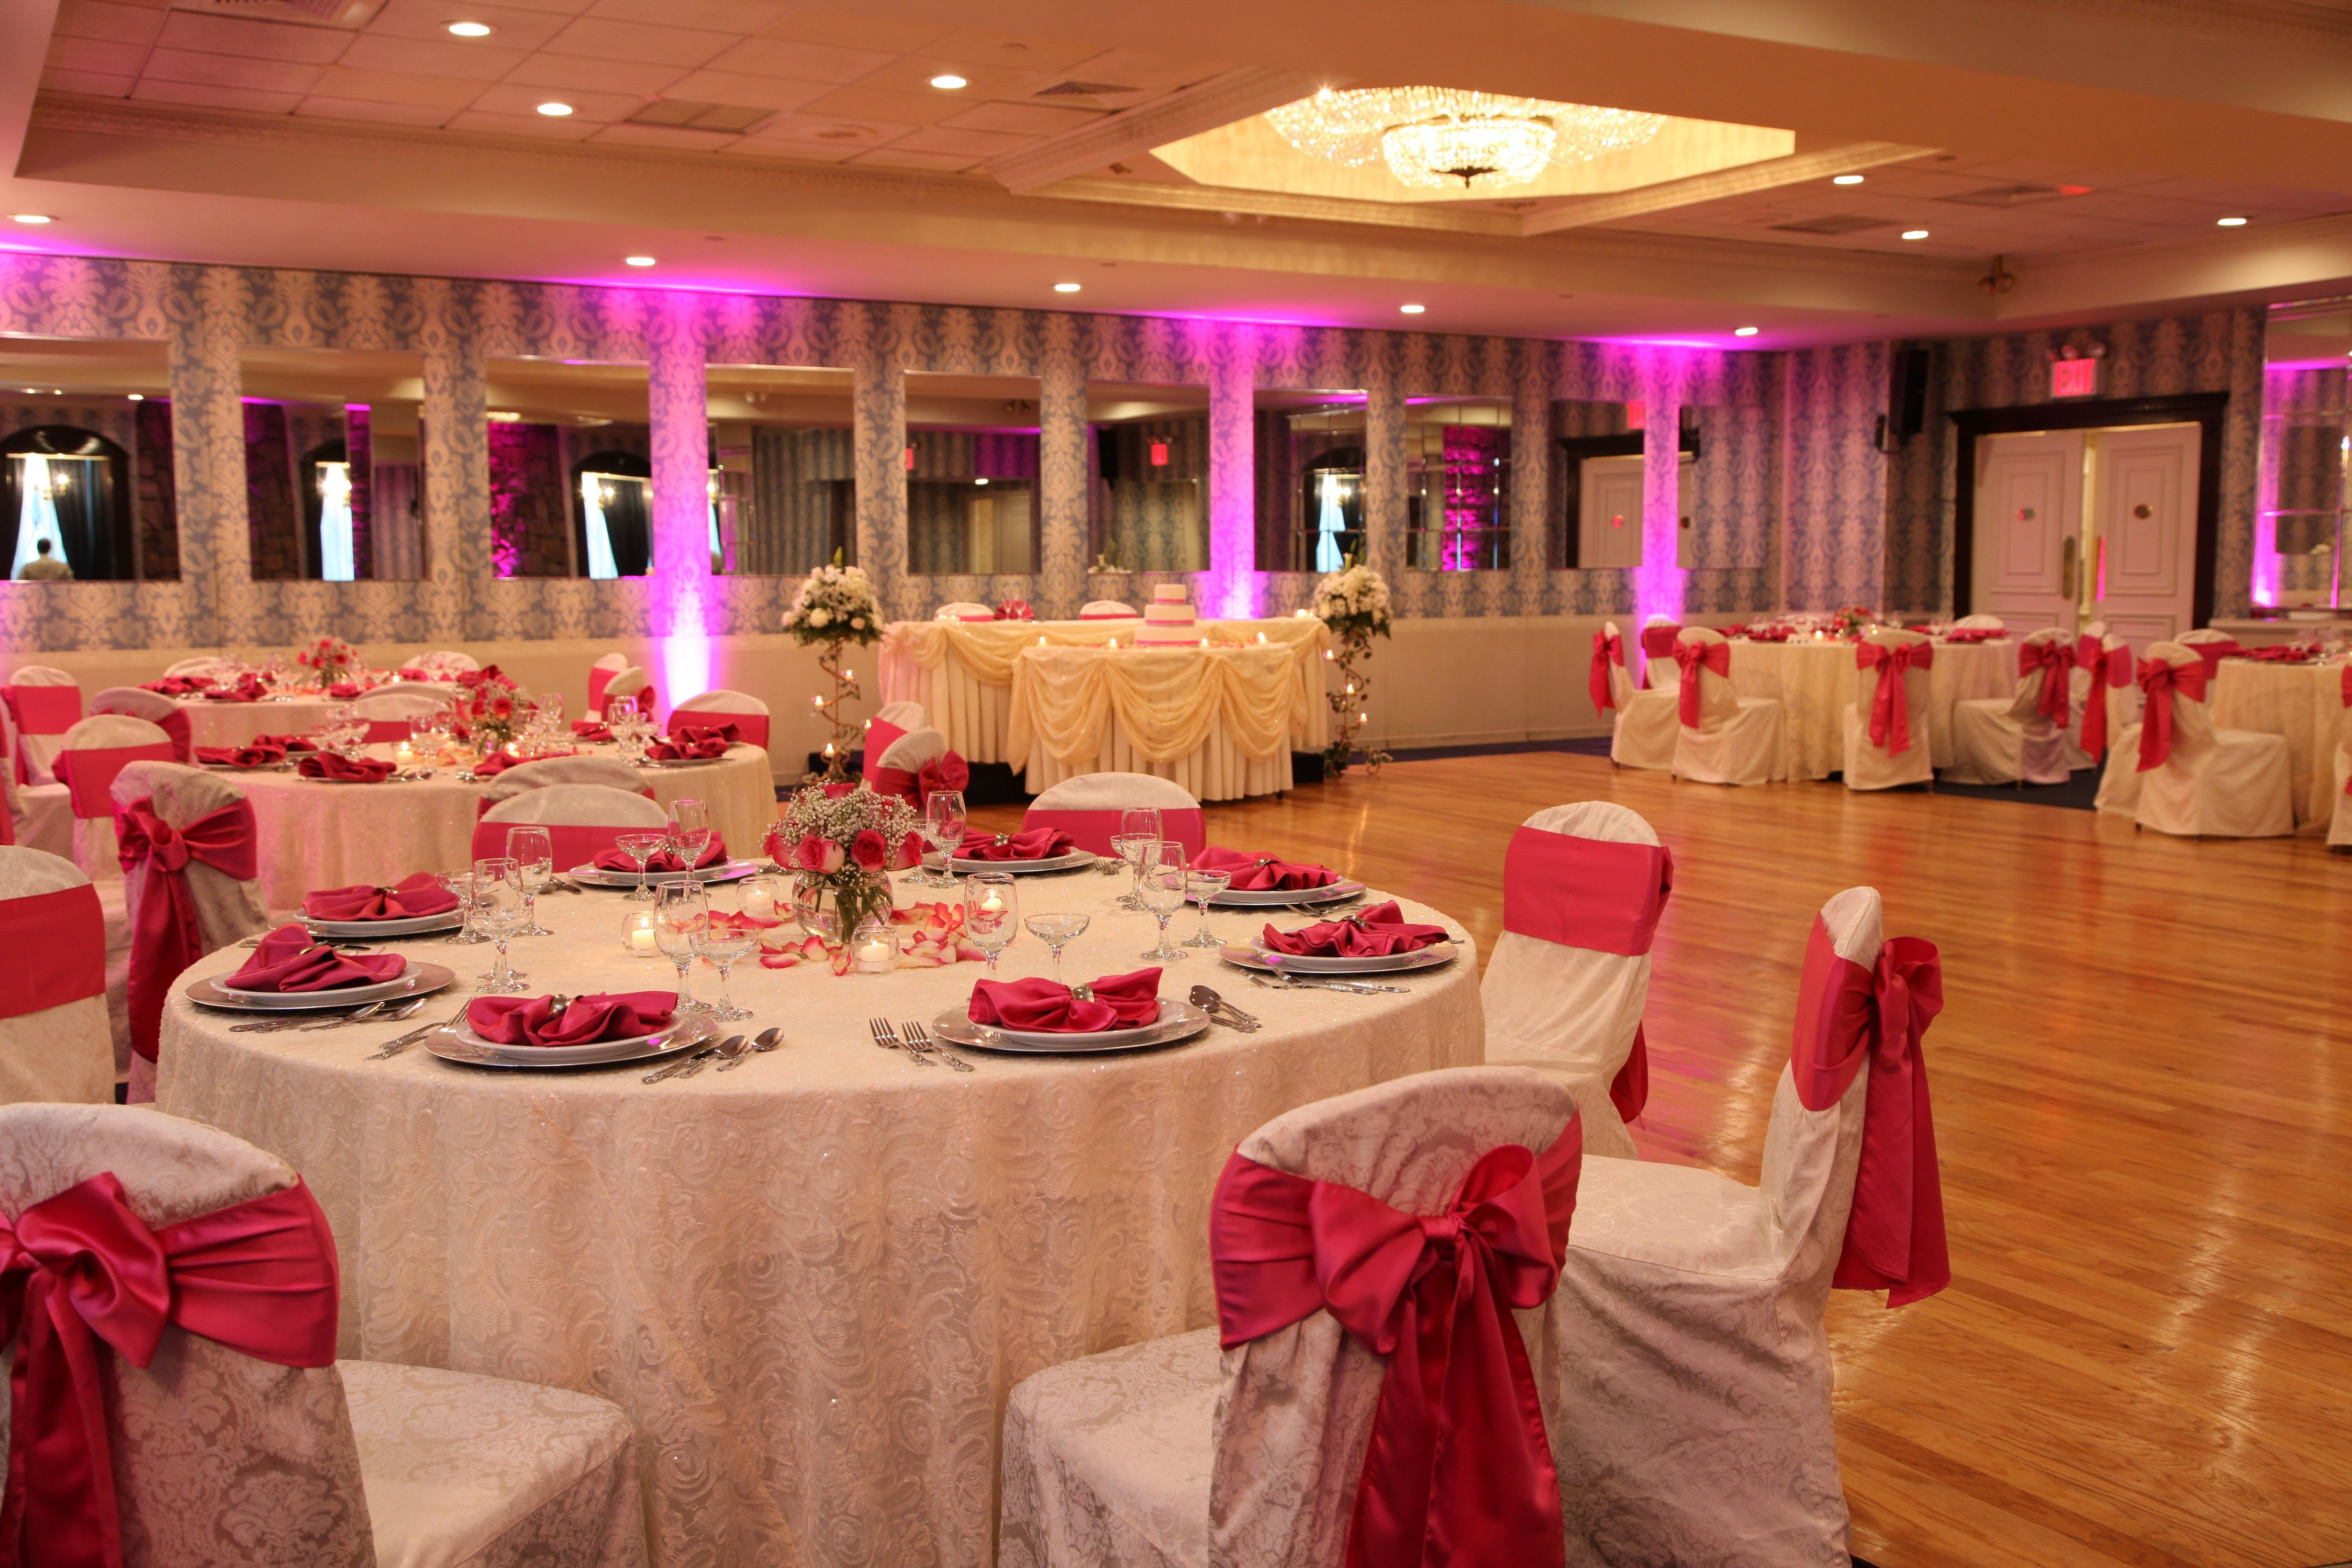 Antuns Antunsqueens Antunsqueensvillage Weddings Sweet16 Cateringhall Weddingreception Weddingceremony Q Catering Halls Fuschia Wedding Wedding Venues